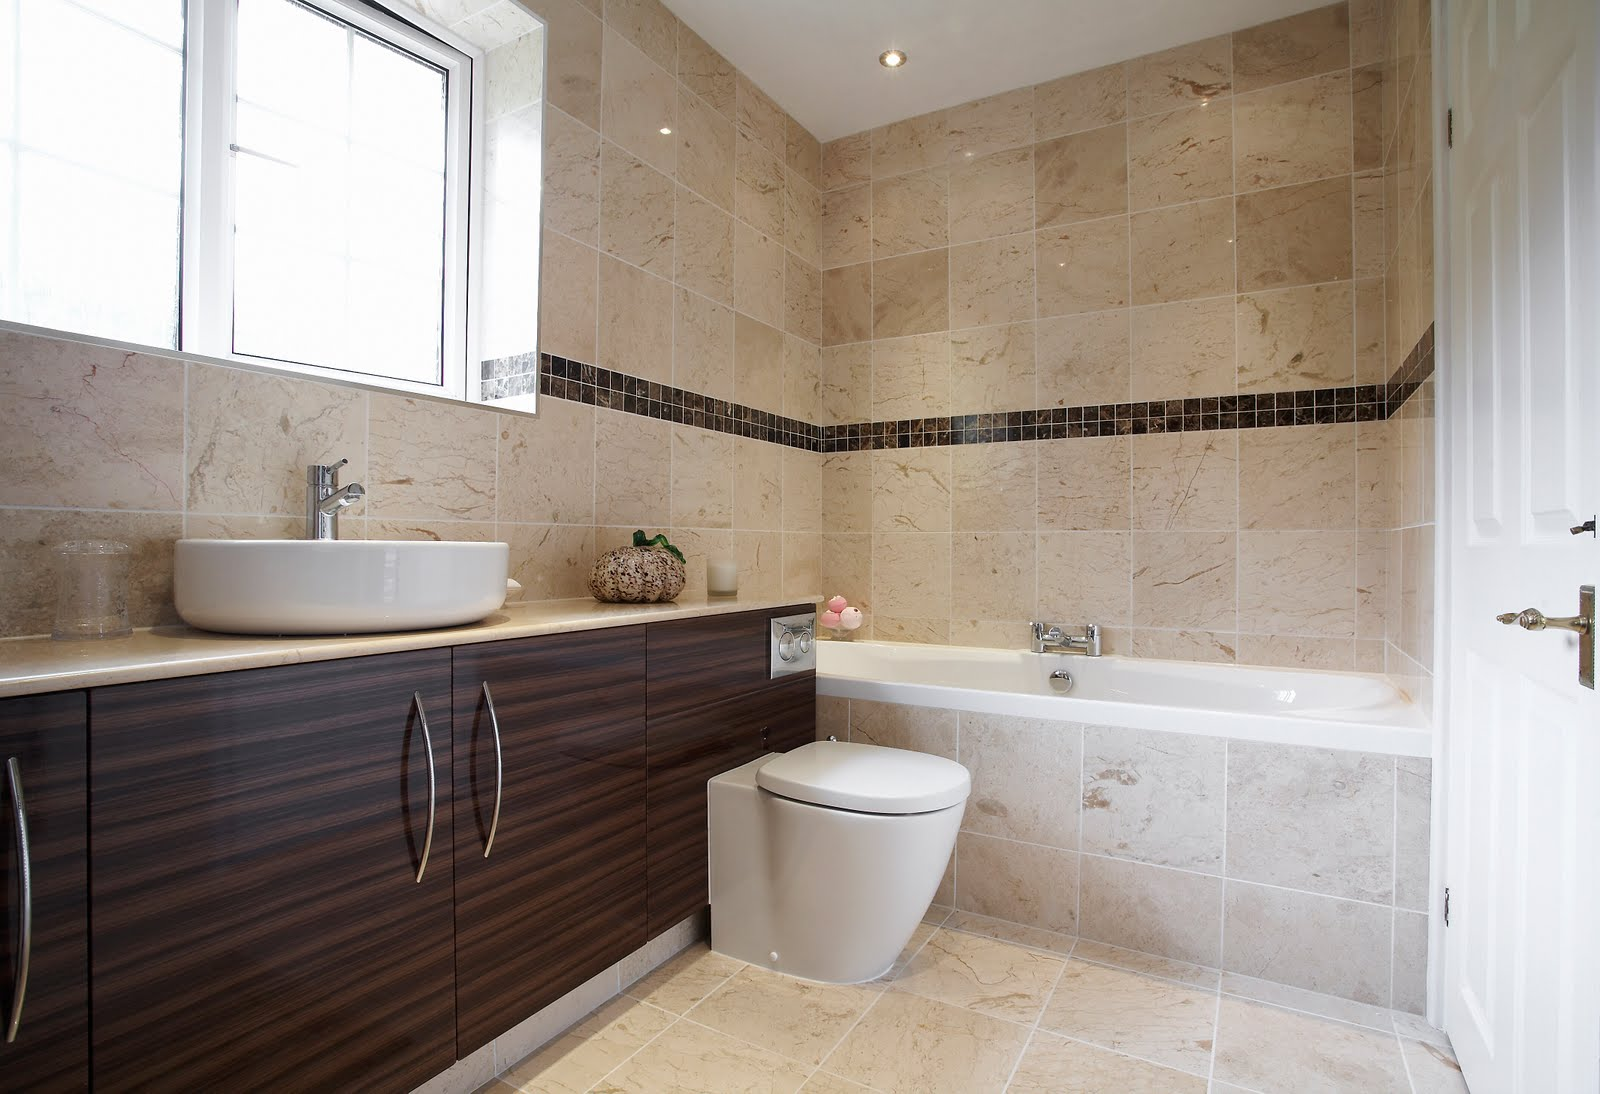 Cymru kitchens ltd cymru kitchens bathrooms for Bathroom design ltd